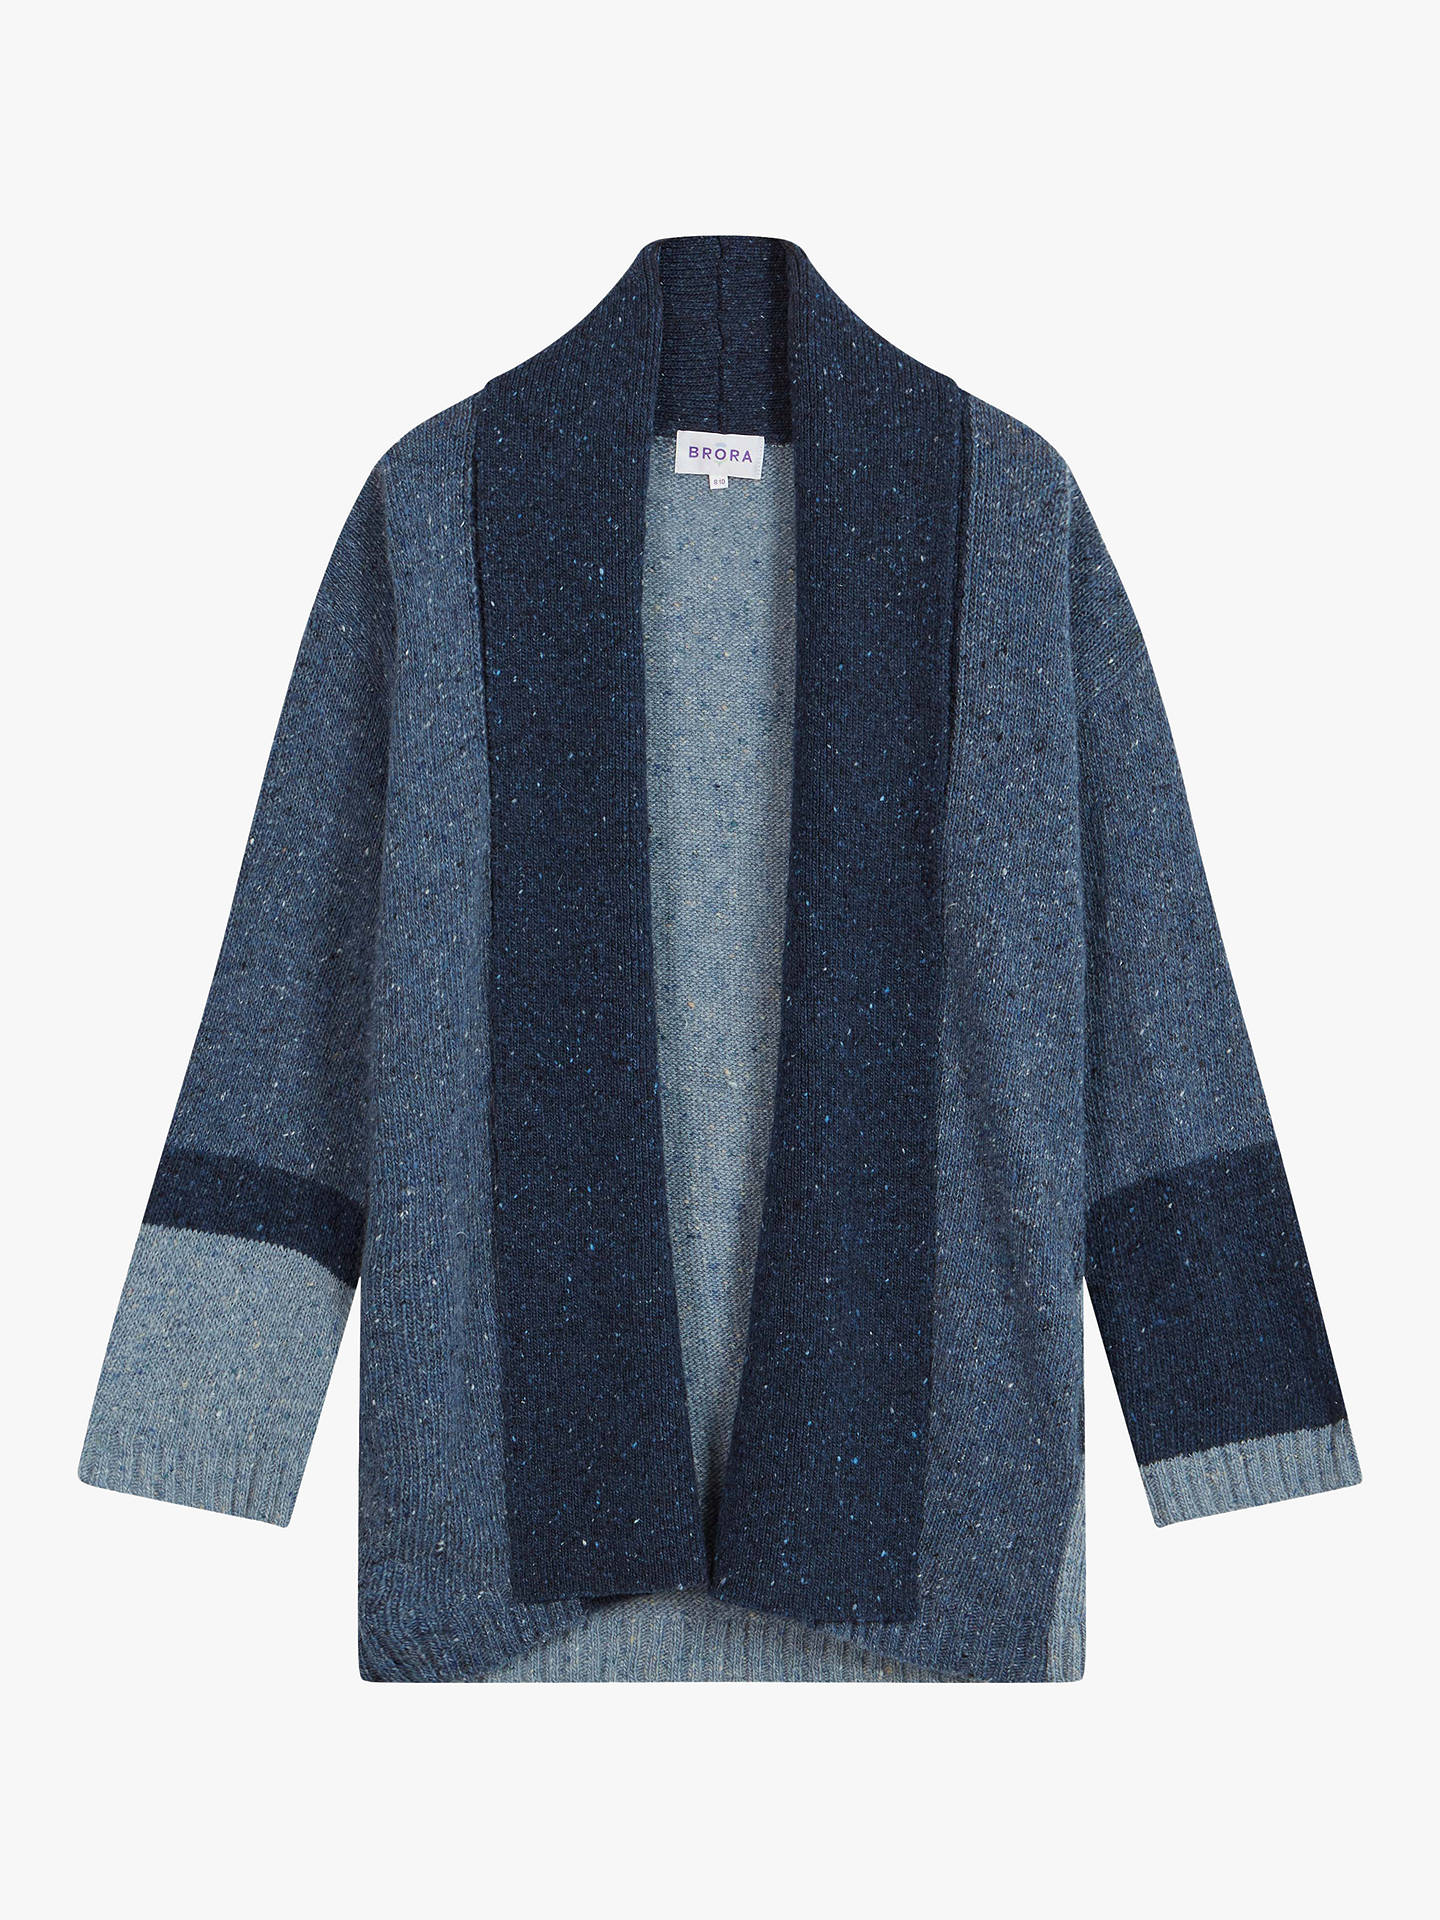 BuyBrora Mohair Blend Donegal Knit Cardigan, Ink, 8-10 Online at johnlewis.com